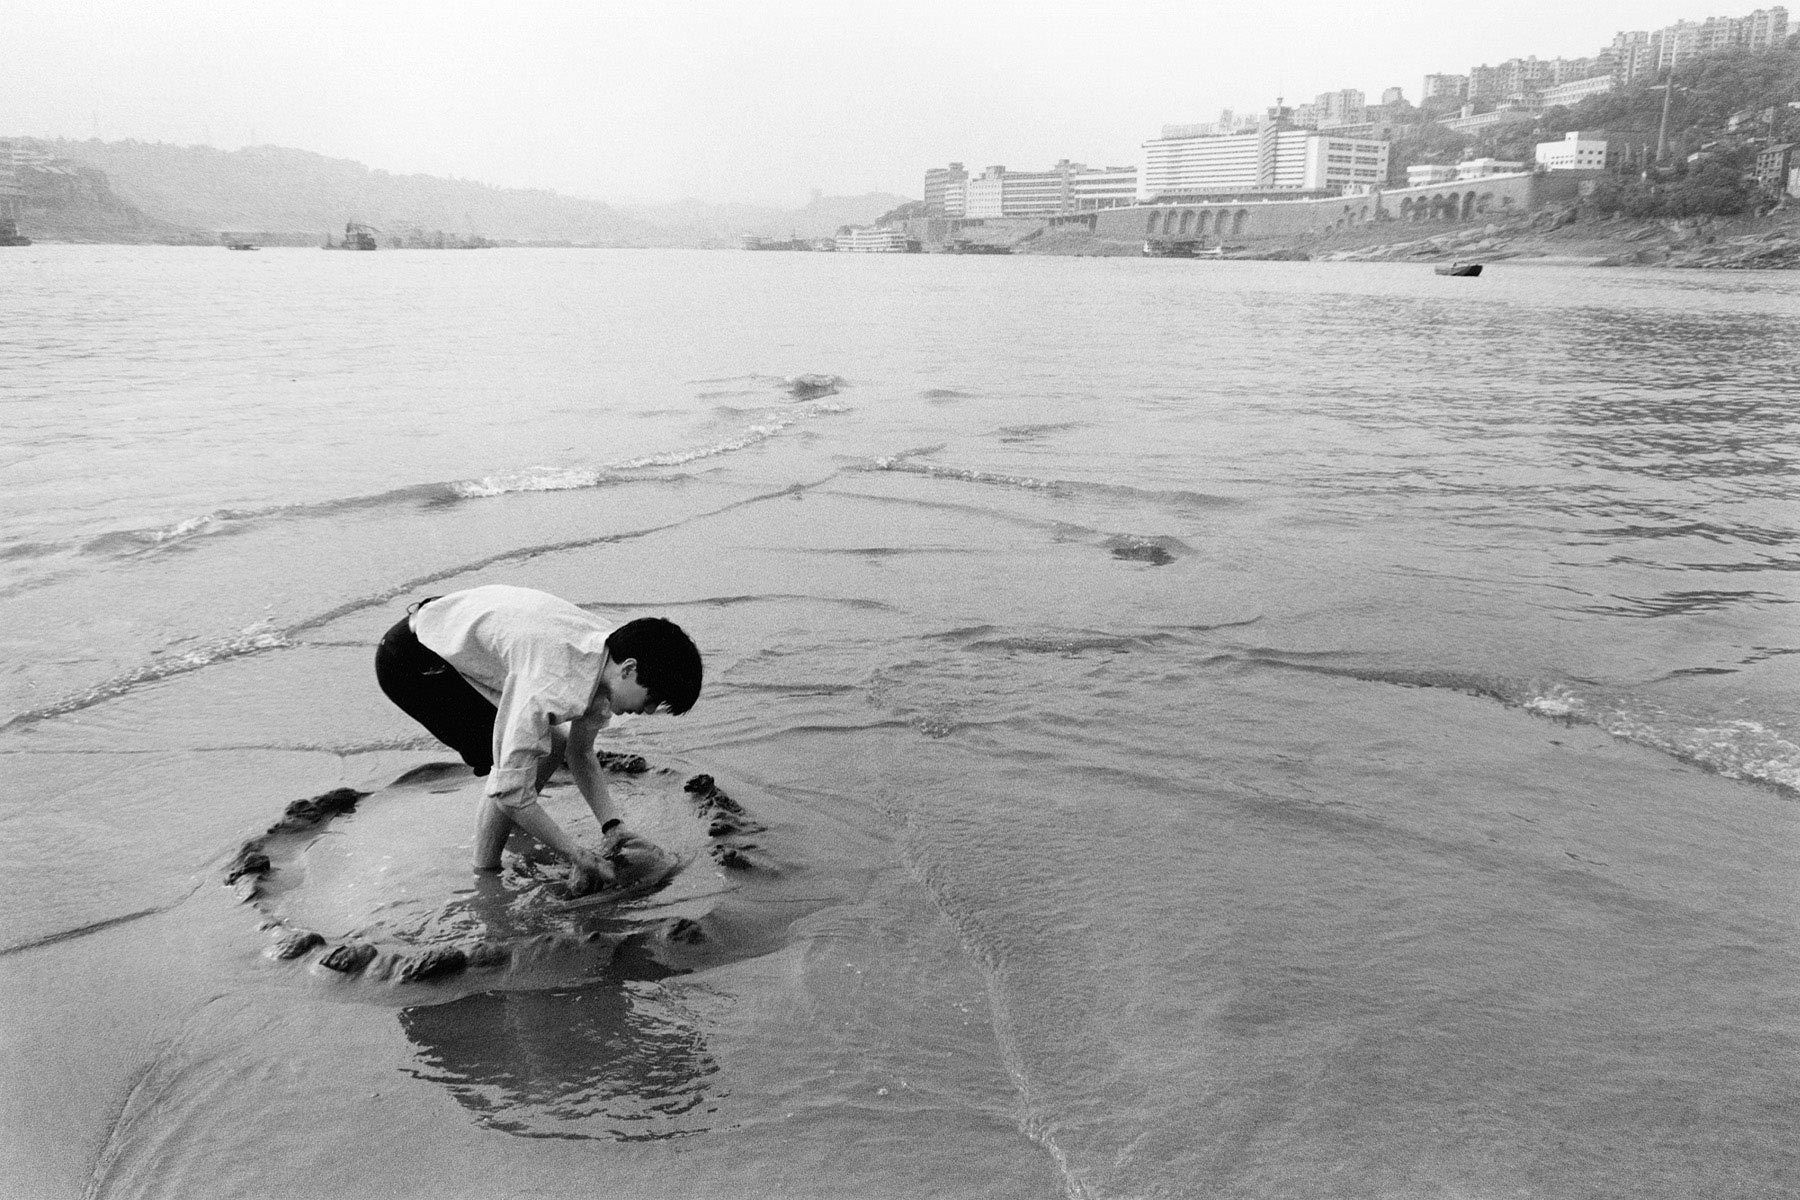 Fishing, Chongqing, China 1999